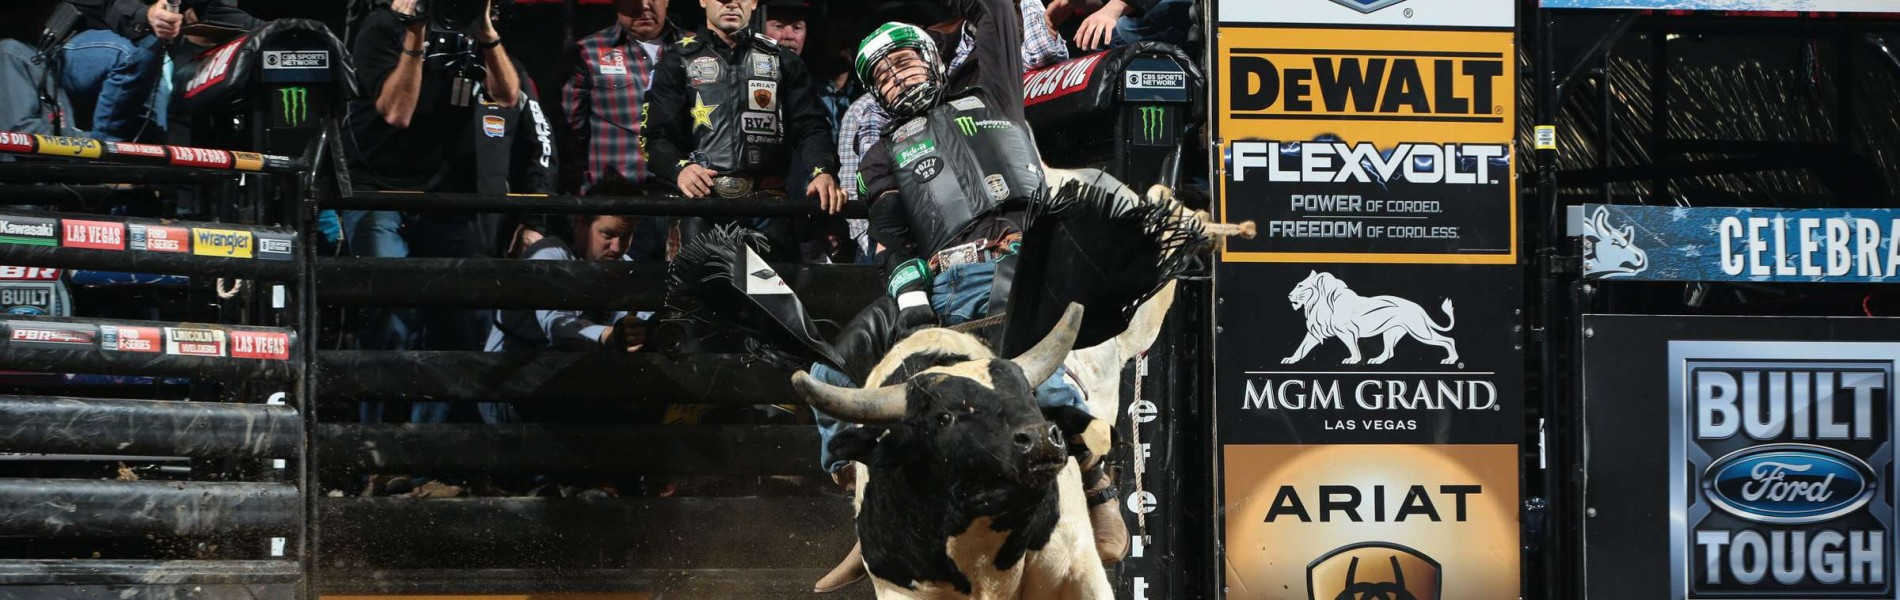 Gage Gay rides Nunes Livestock's Lucifer for 77.75 during the first round of the Anaheim Built Ford Tough series PBR